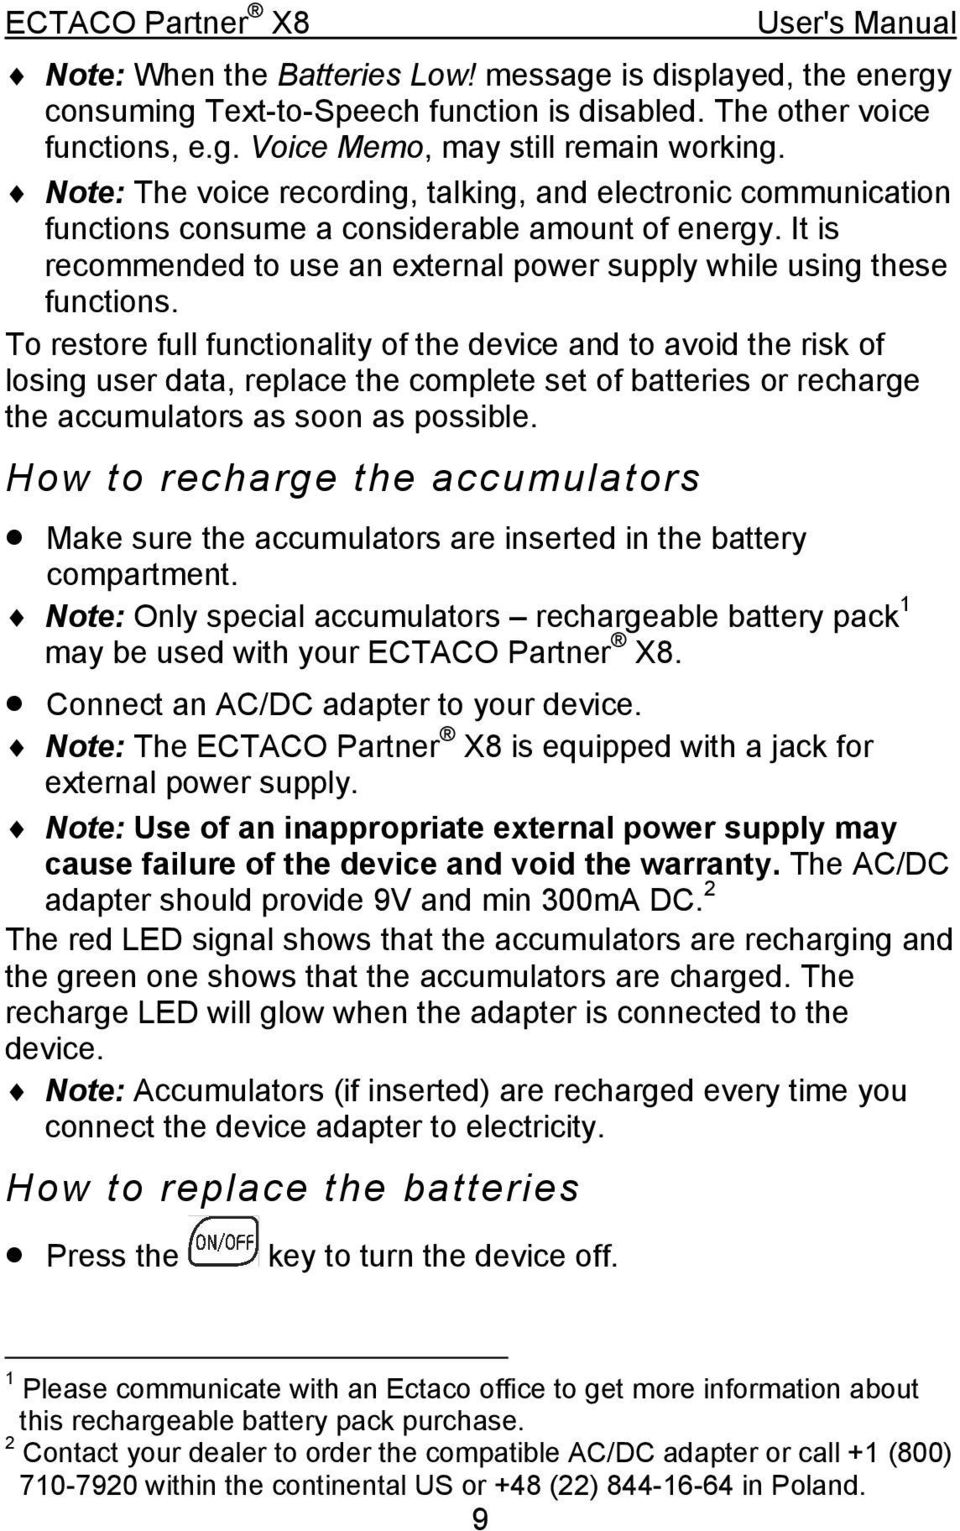 To restore full functionality of the device and to avoid the risk of losing user data, replace the complete set of batteries or recharge the accumulators as soon as possible.